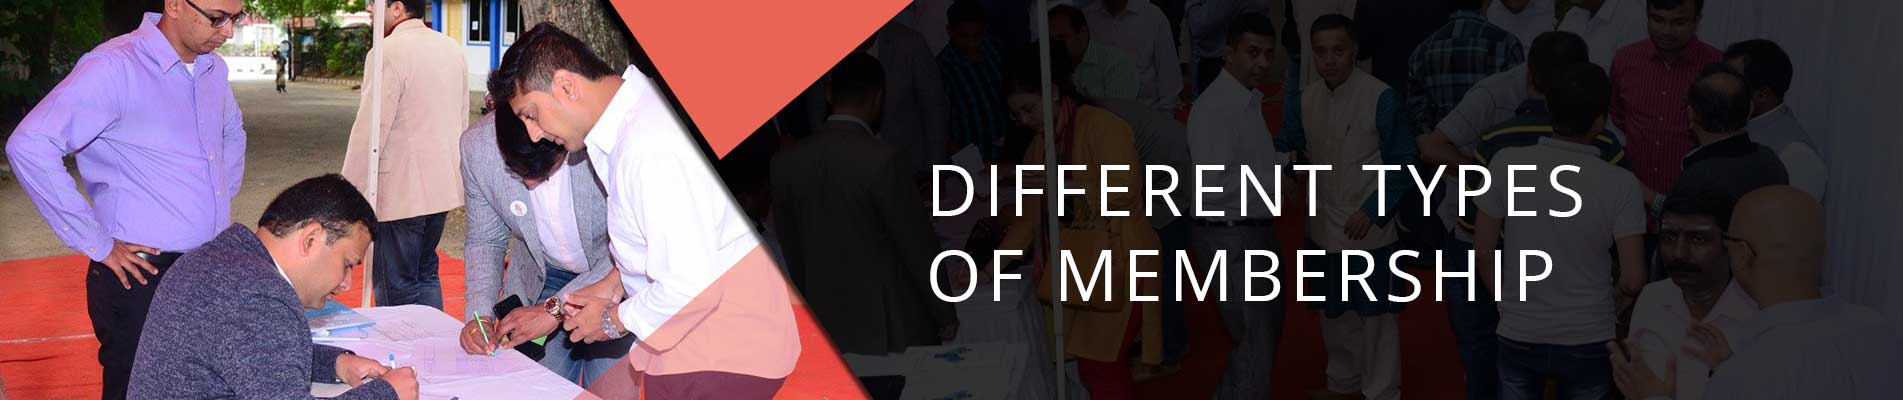 different-types-of-membership